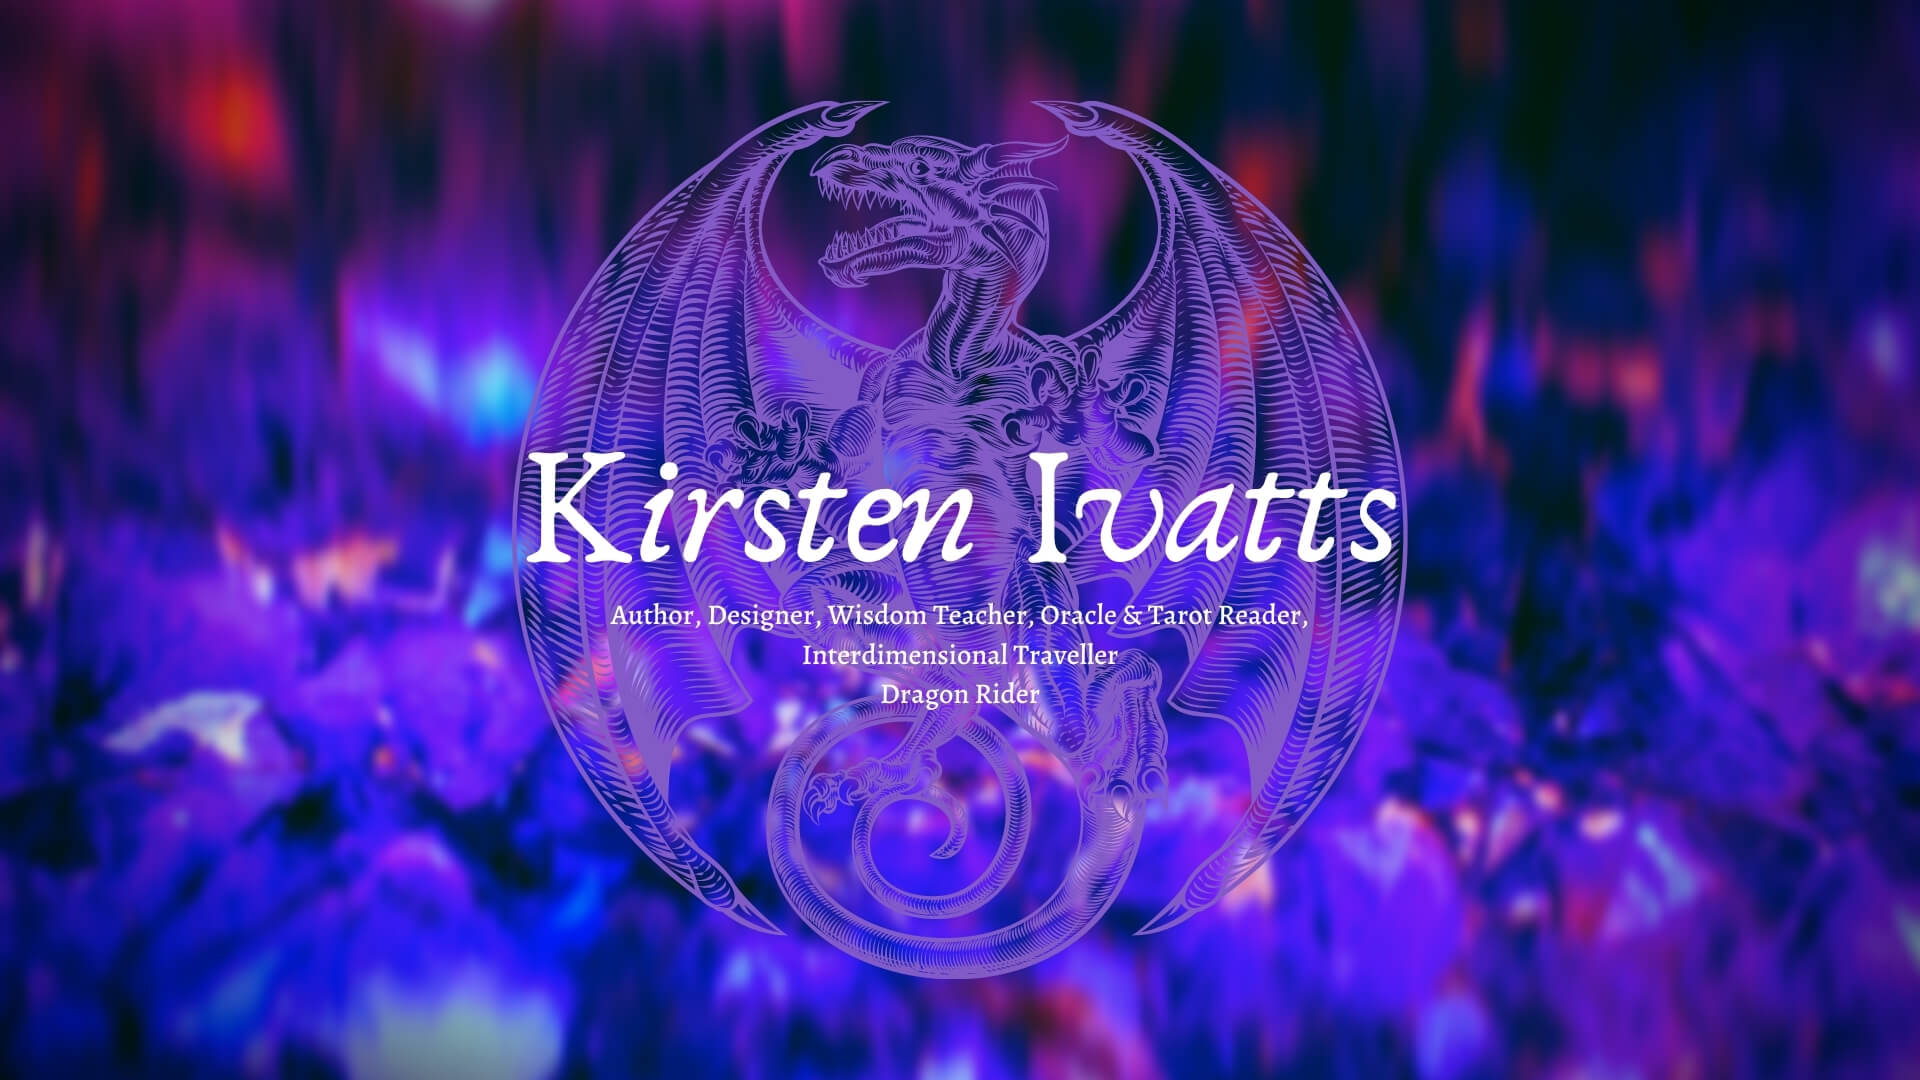 Kirsten Ivatts and dragon